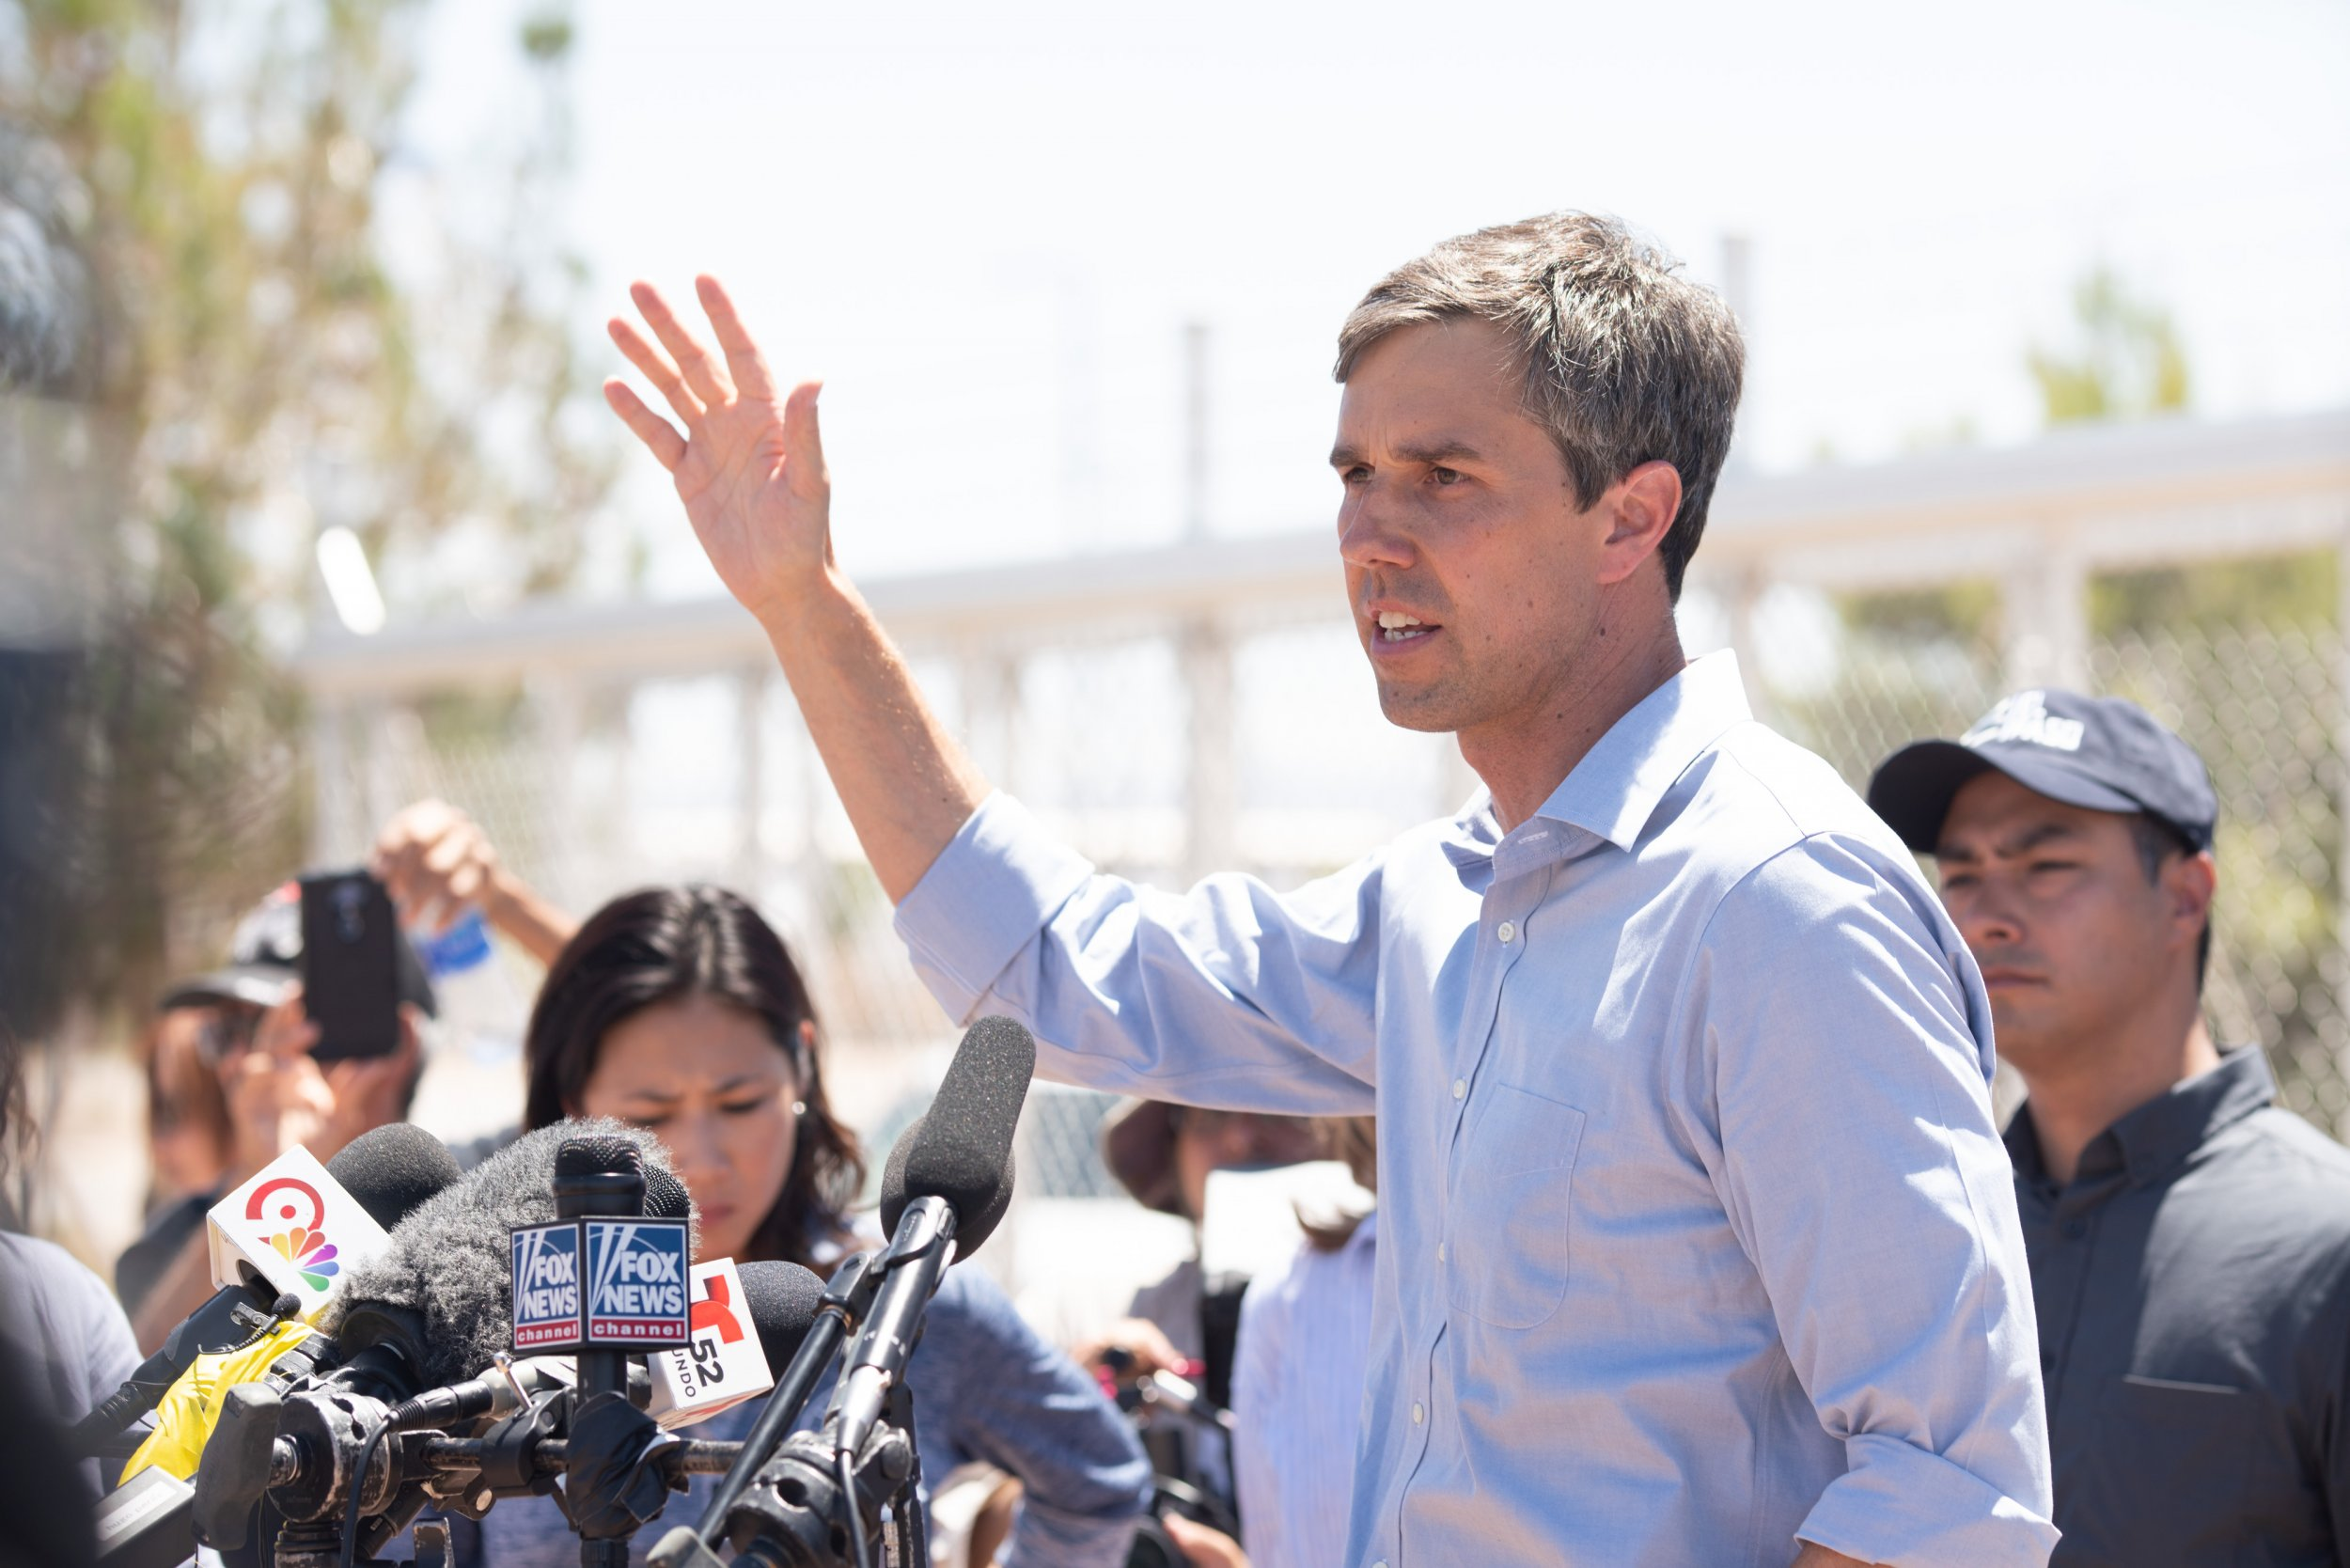 """Beto O'Rourke to take on Trump at border rally to """"show the country the reality"""""""